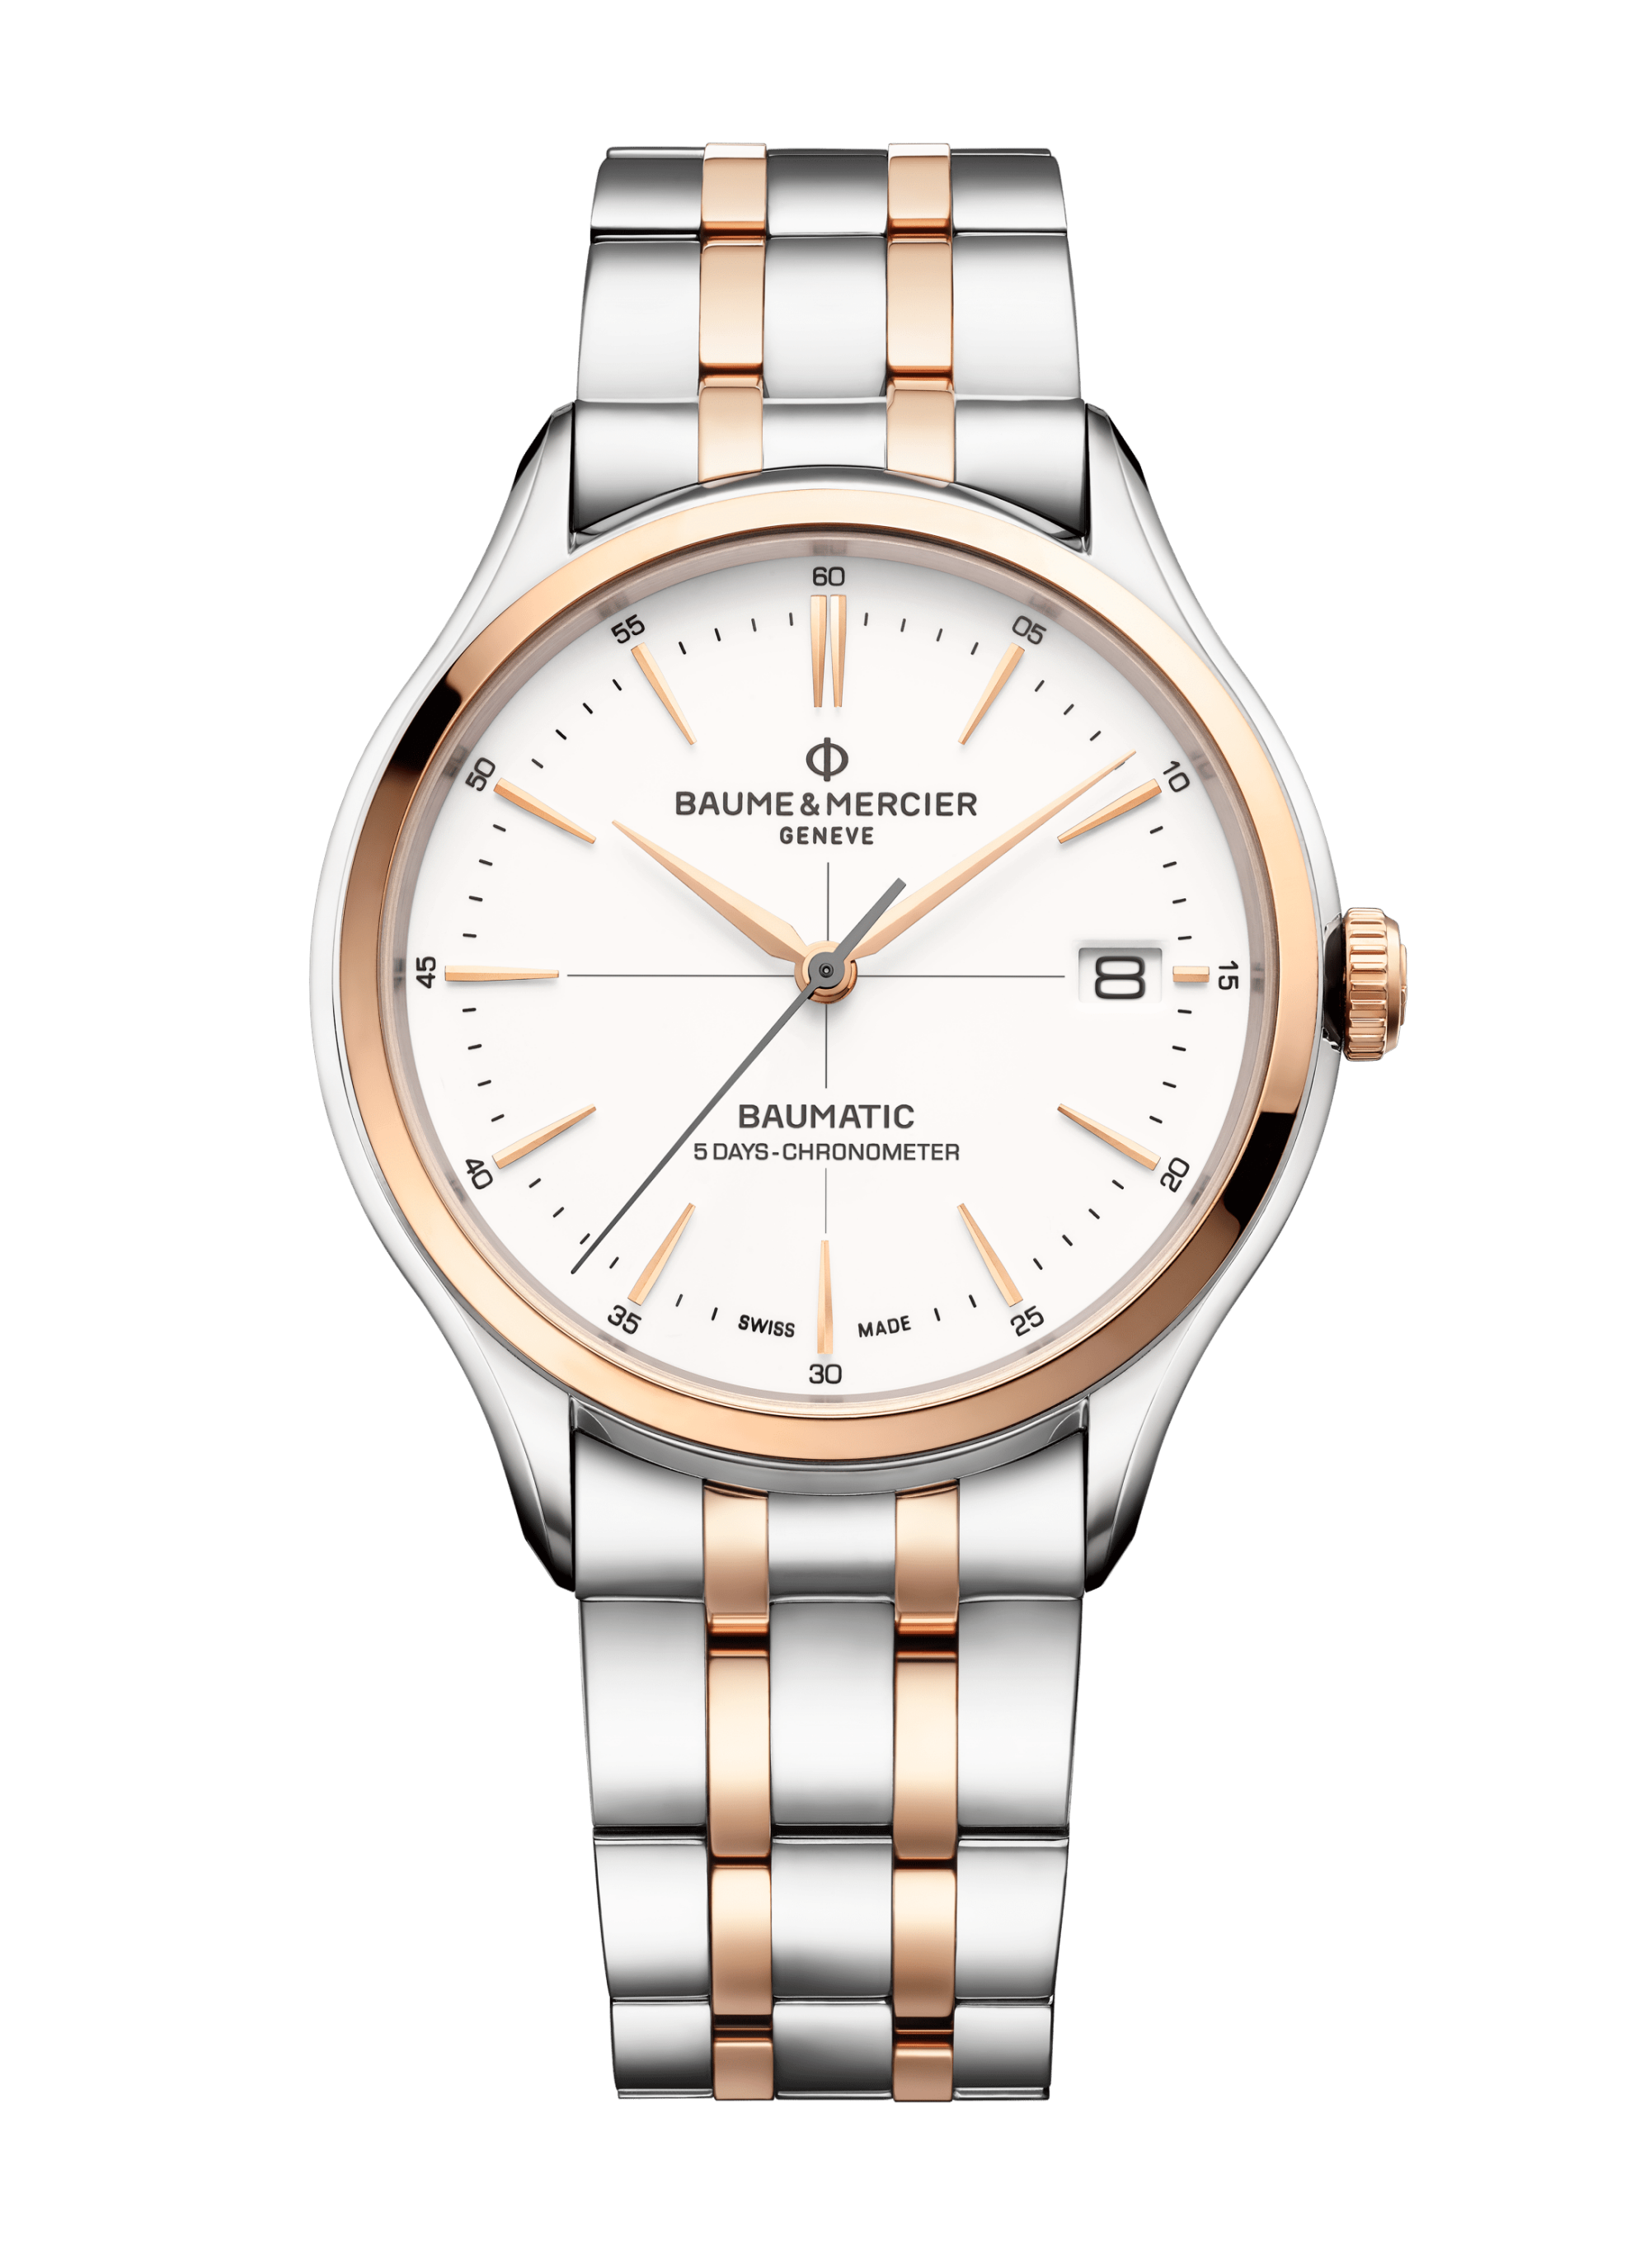 名士表(Baume & Mercier)Clifton Baumatic 10458 男士腕表 null null